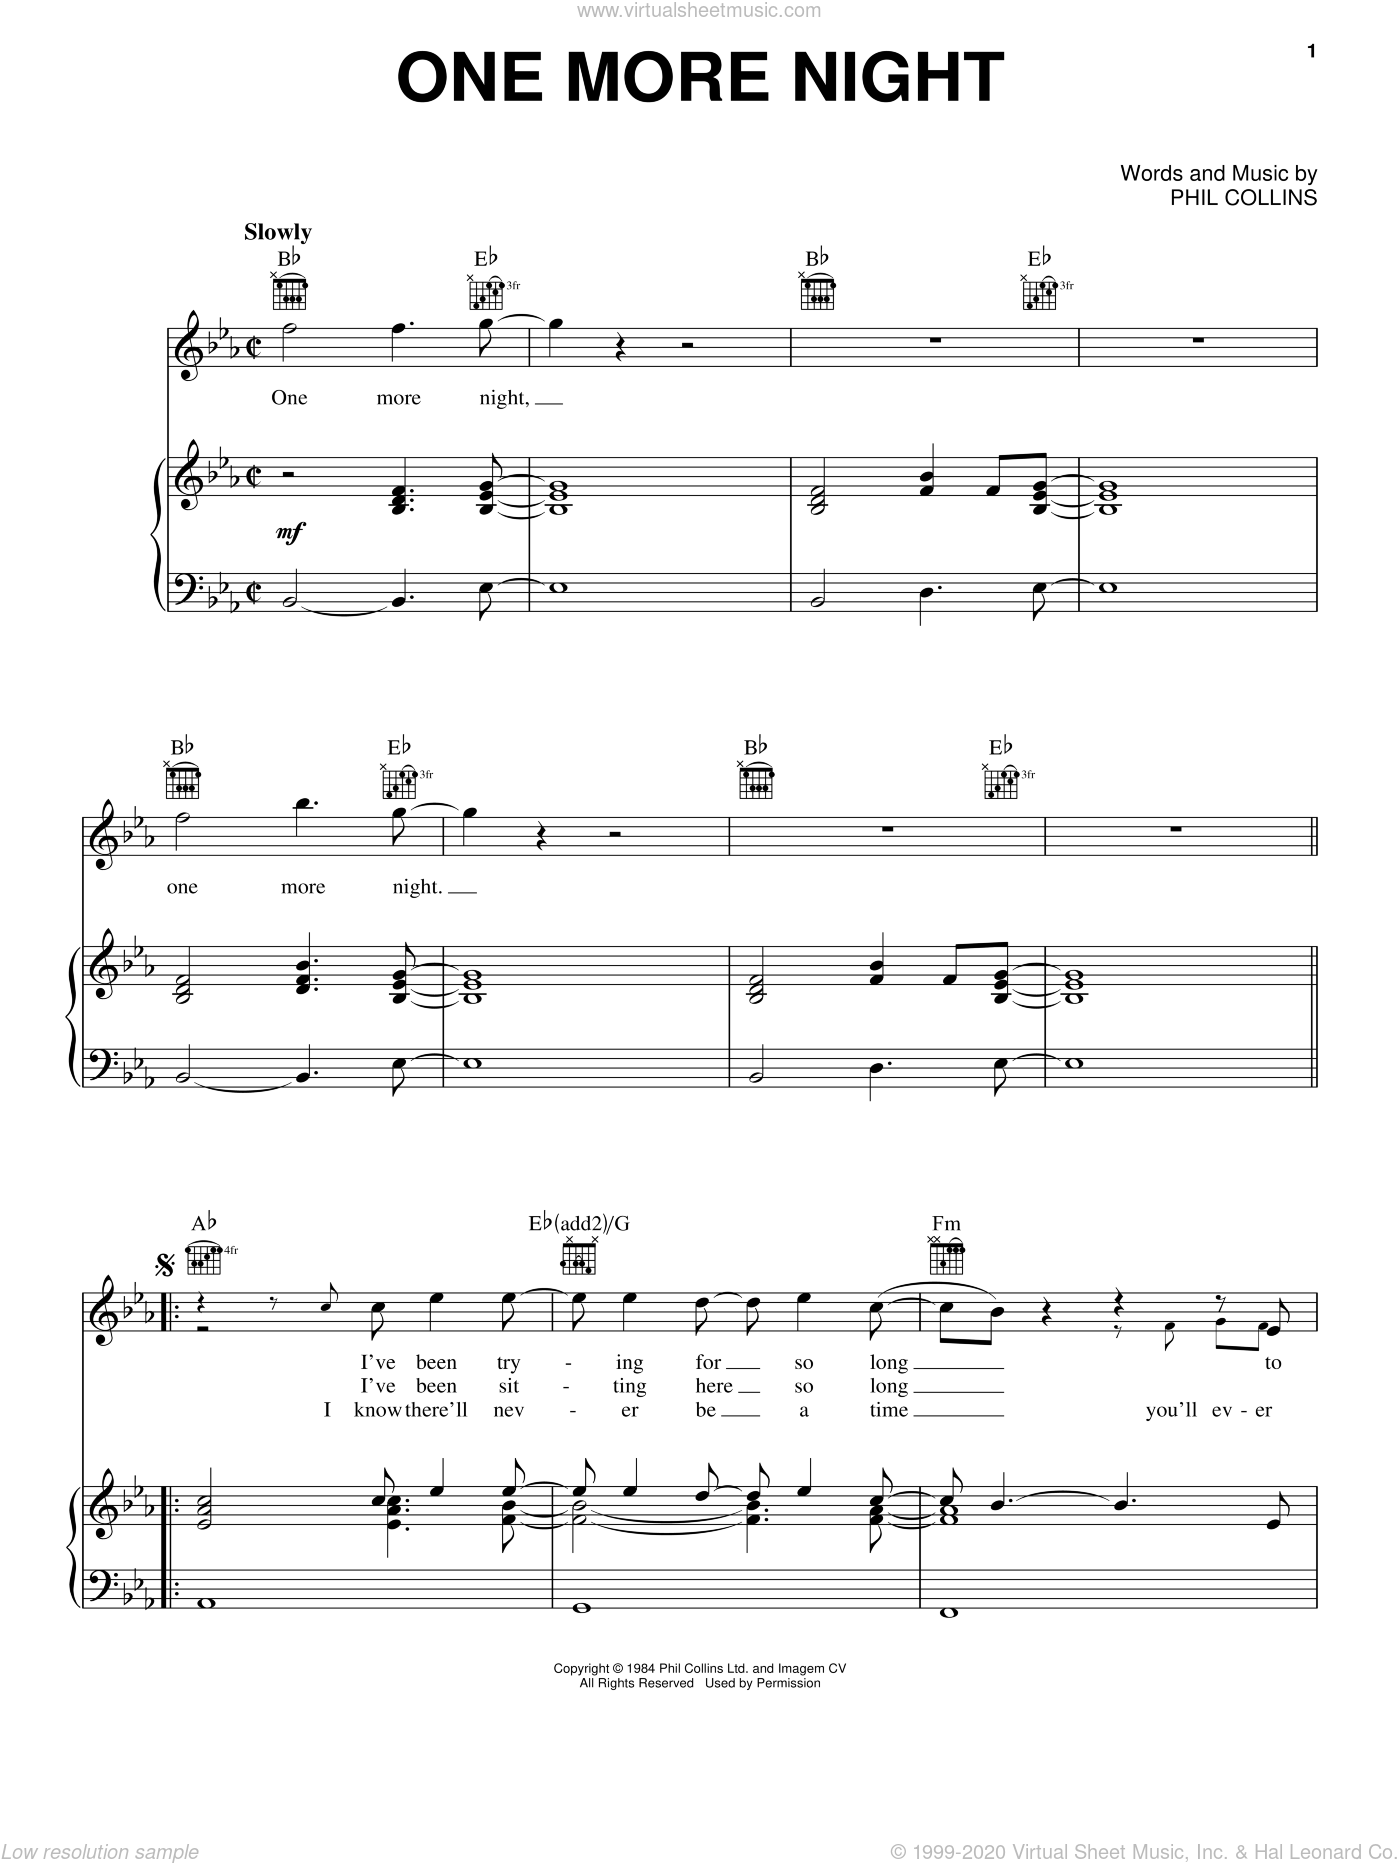 One More Night sheet music for voice, piano or guitar by Phil Collins, intermediate skill level